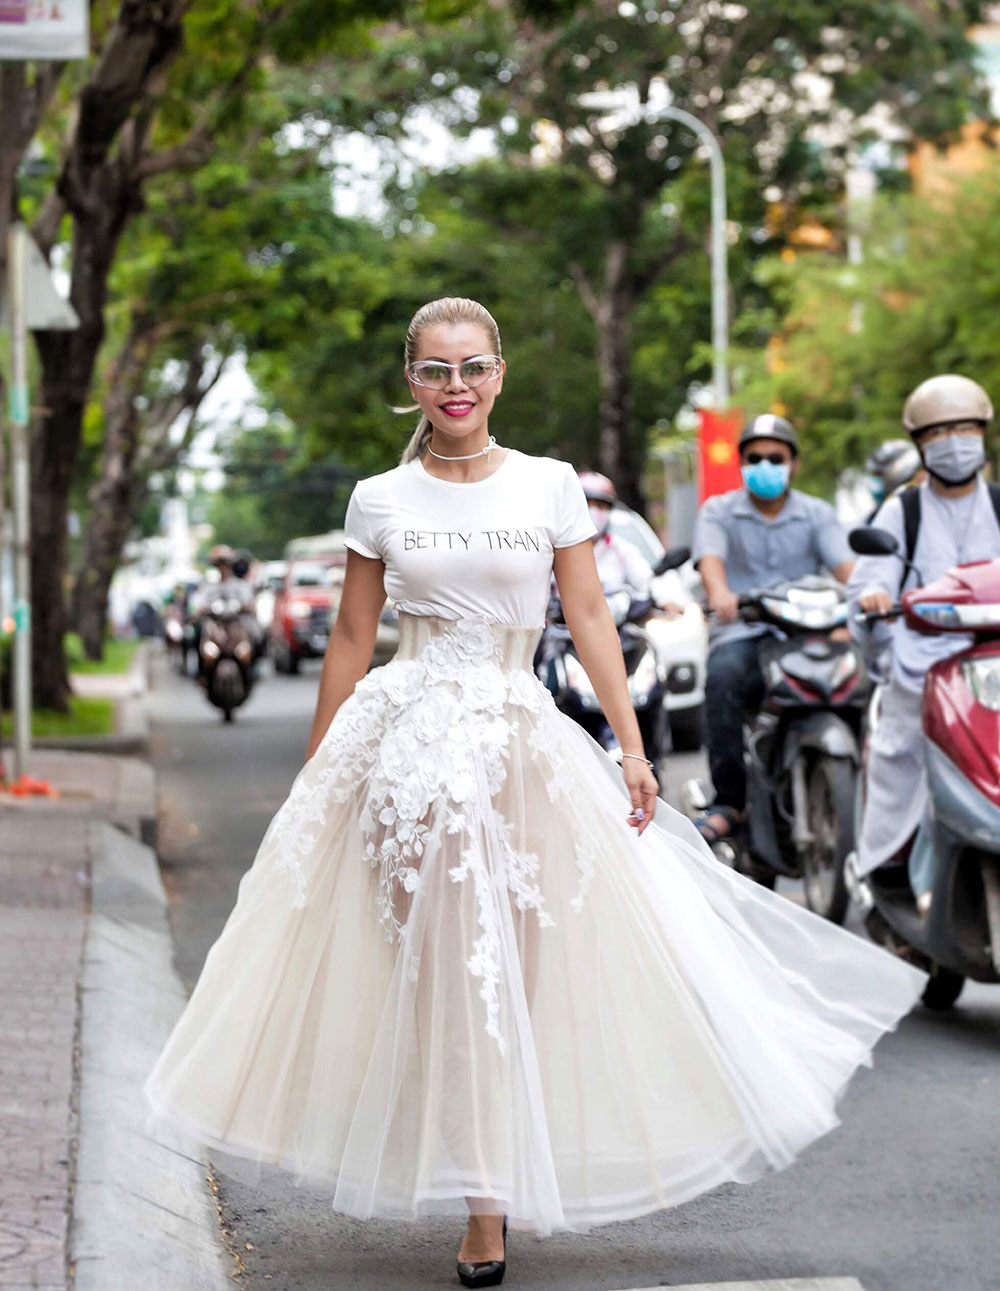 Crystal Phuong in Betty Tran- Singapore Fashion Blog- Street style in Ho Chi Minh